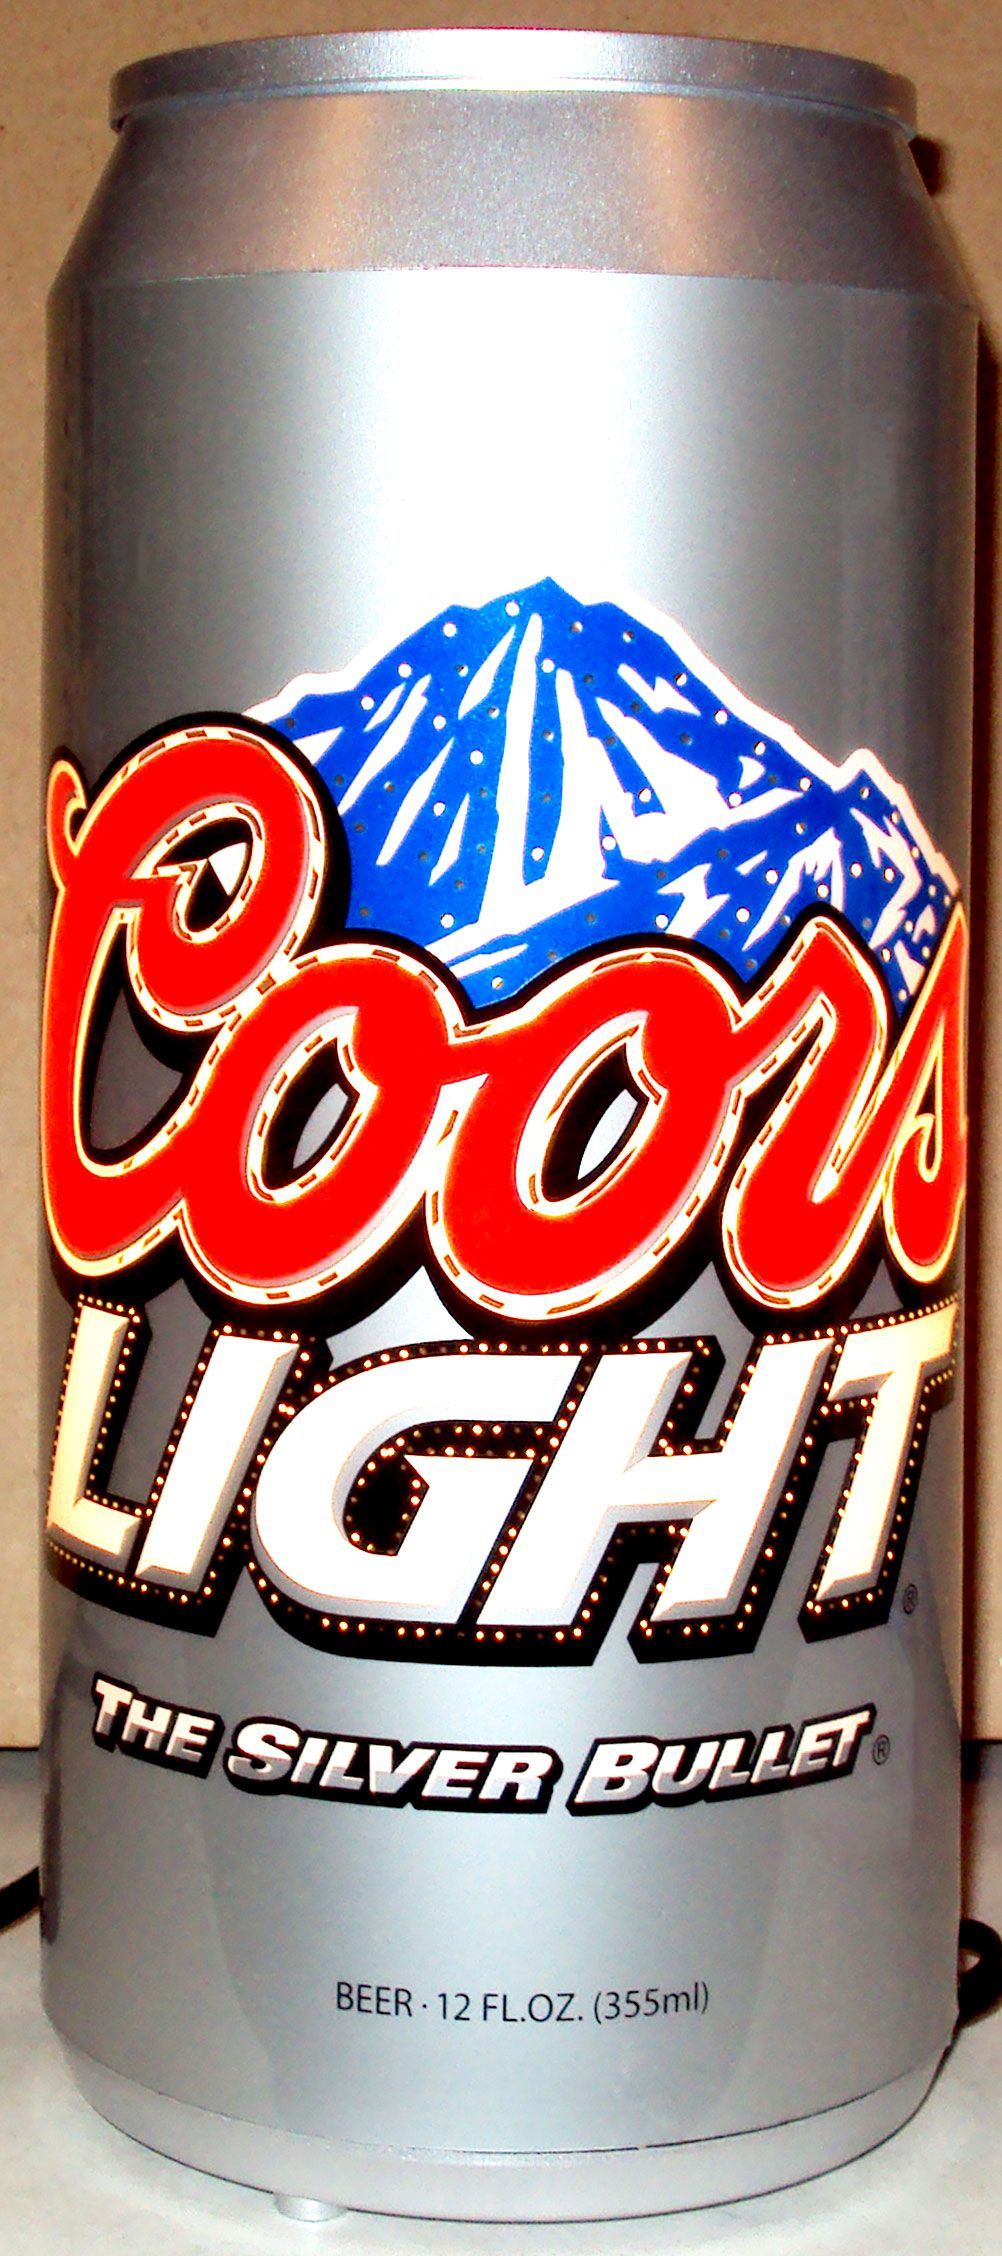 Coors Light Rotating Lamp Coors Light Coors Light Beer Can Coors